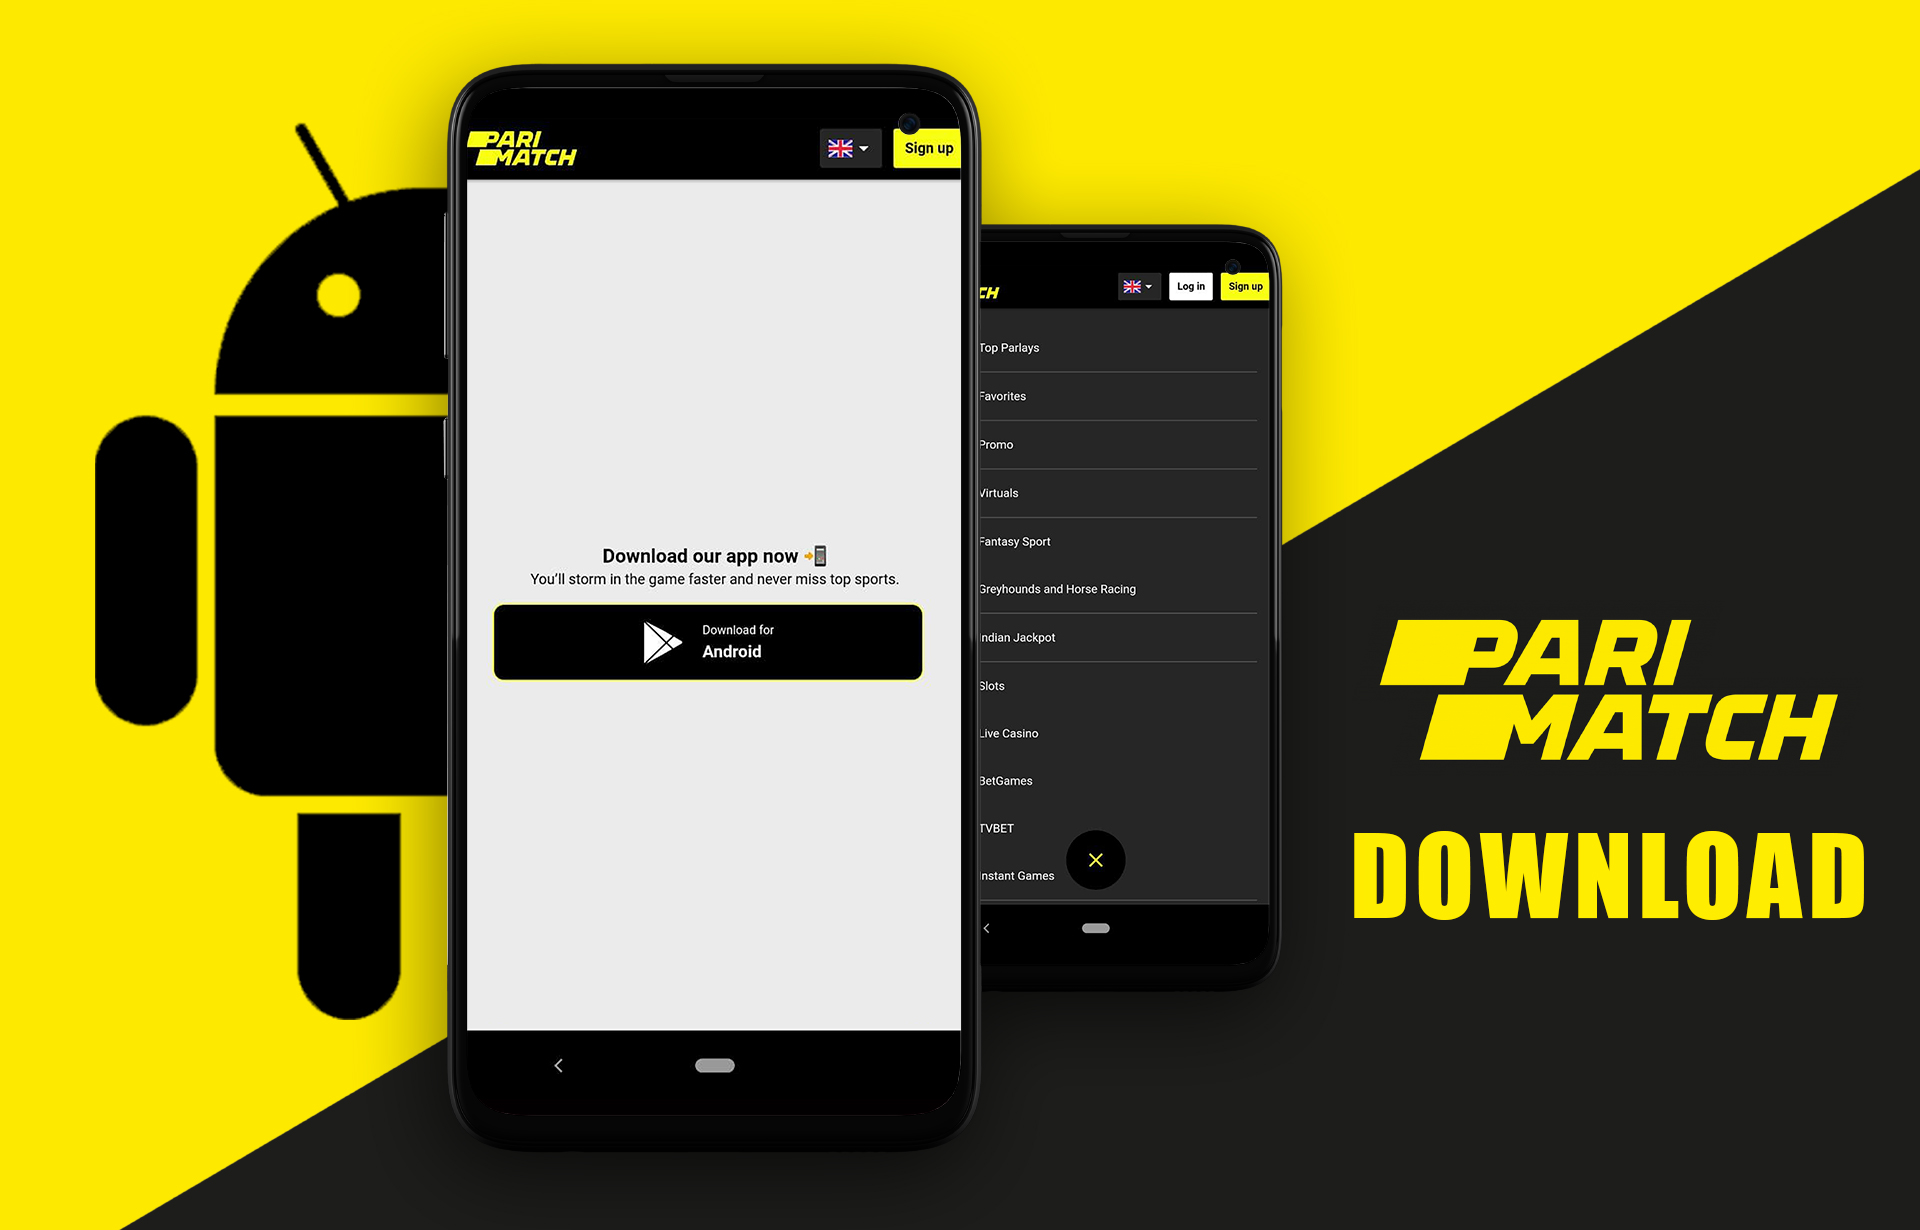 Find the app page and download the application.